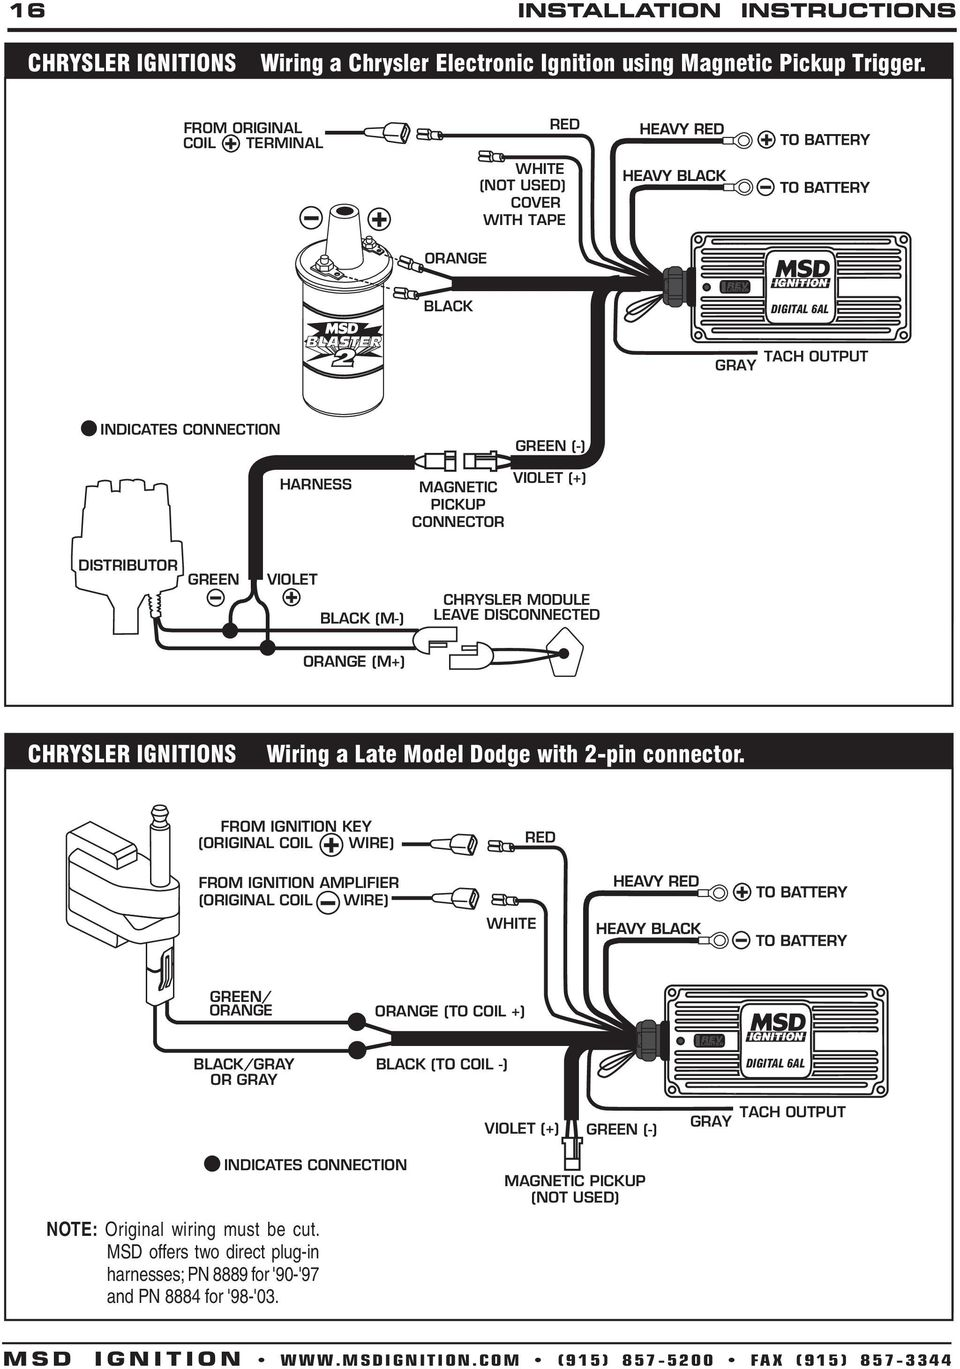 Msd Digital 6a And 6al Ignition Control Pn 6201 Pdf Wiring Diagram Mallory Distributor P 9000 Disconnected M Chrysler Ignitions A Late Model Dodge With 2 Pin Connector